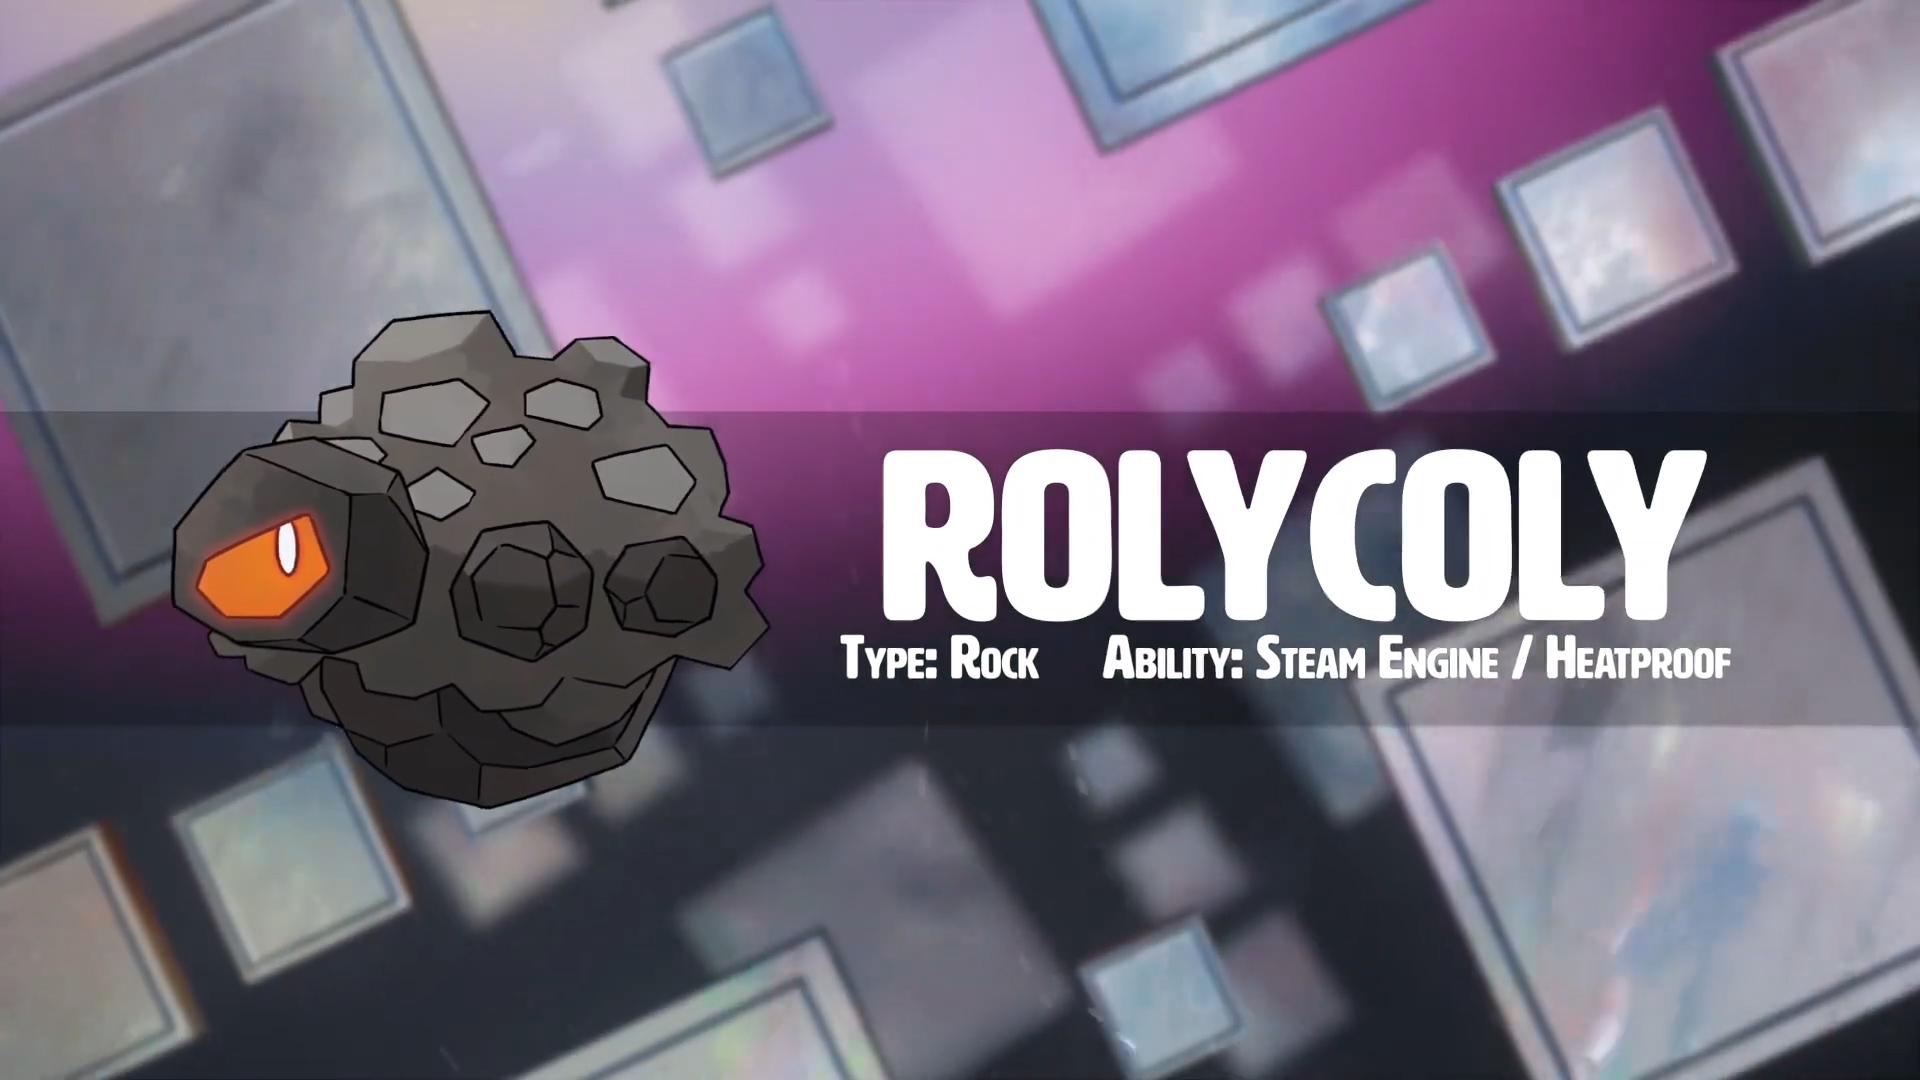 Rolycoly